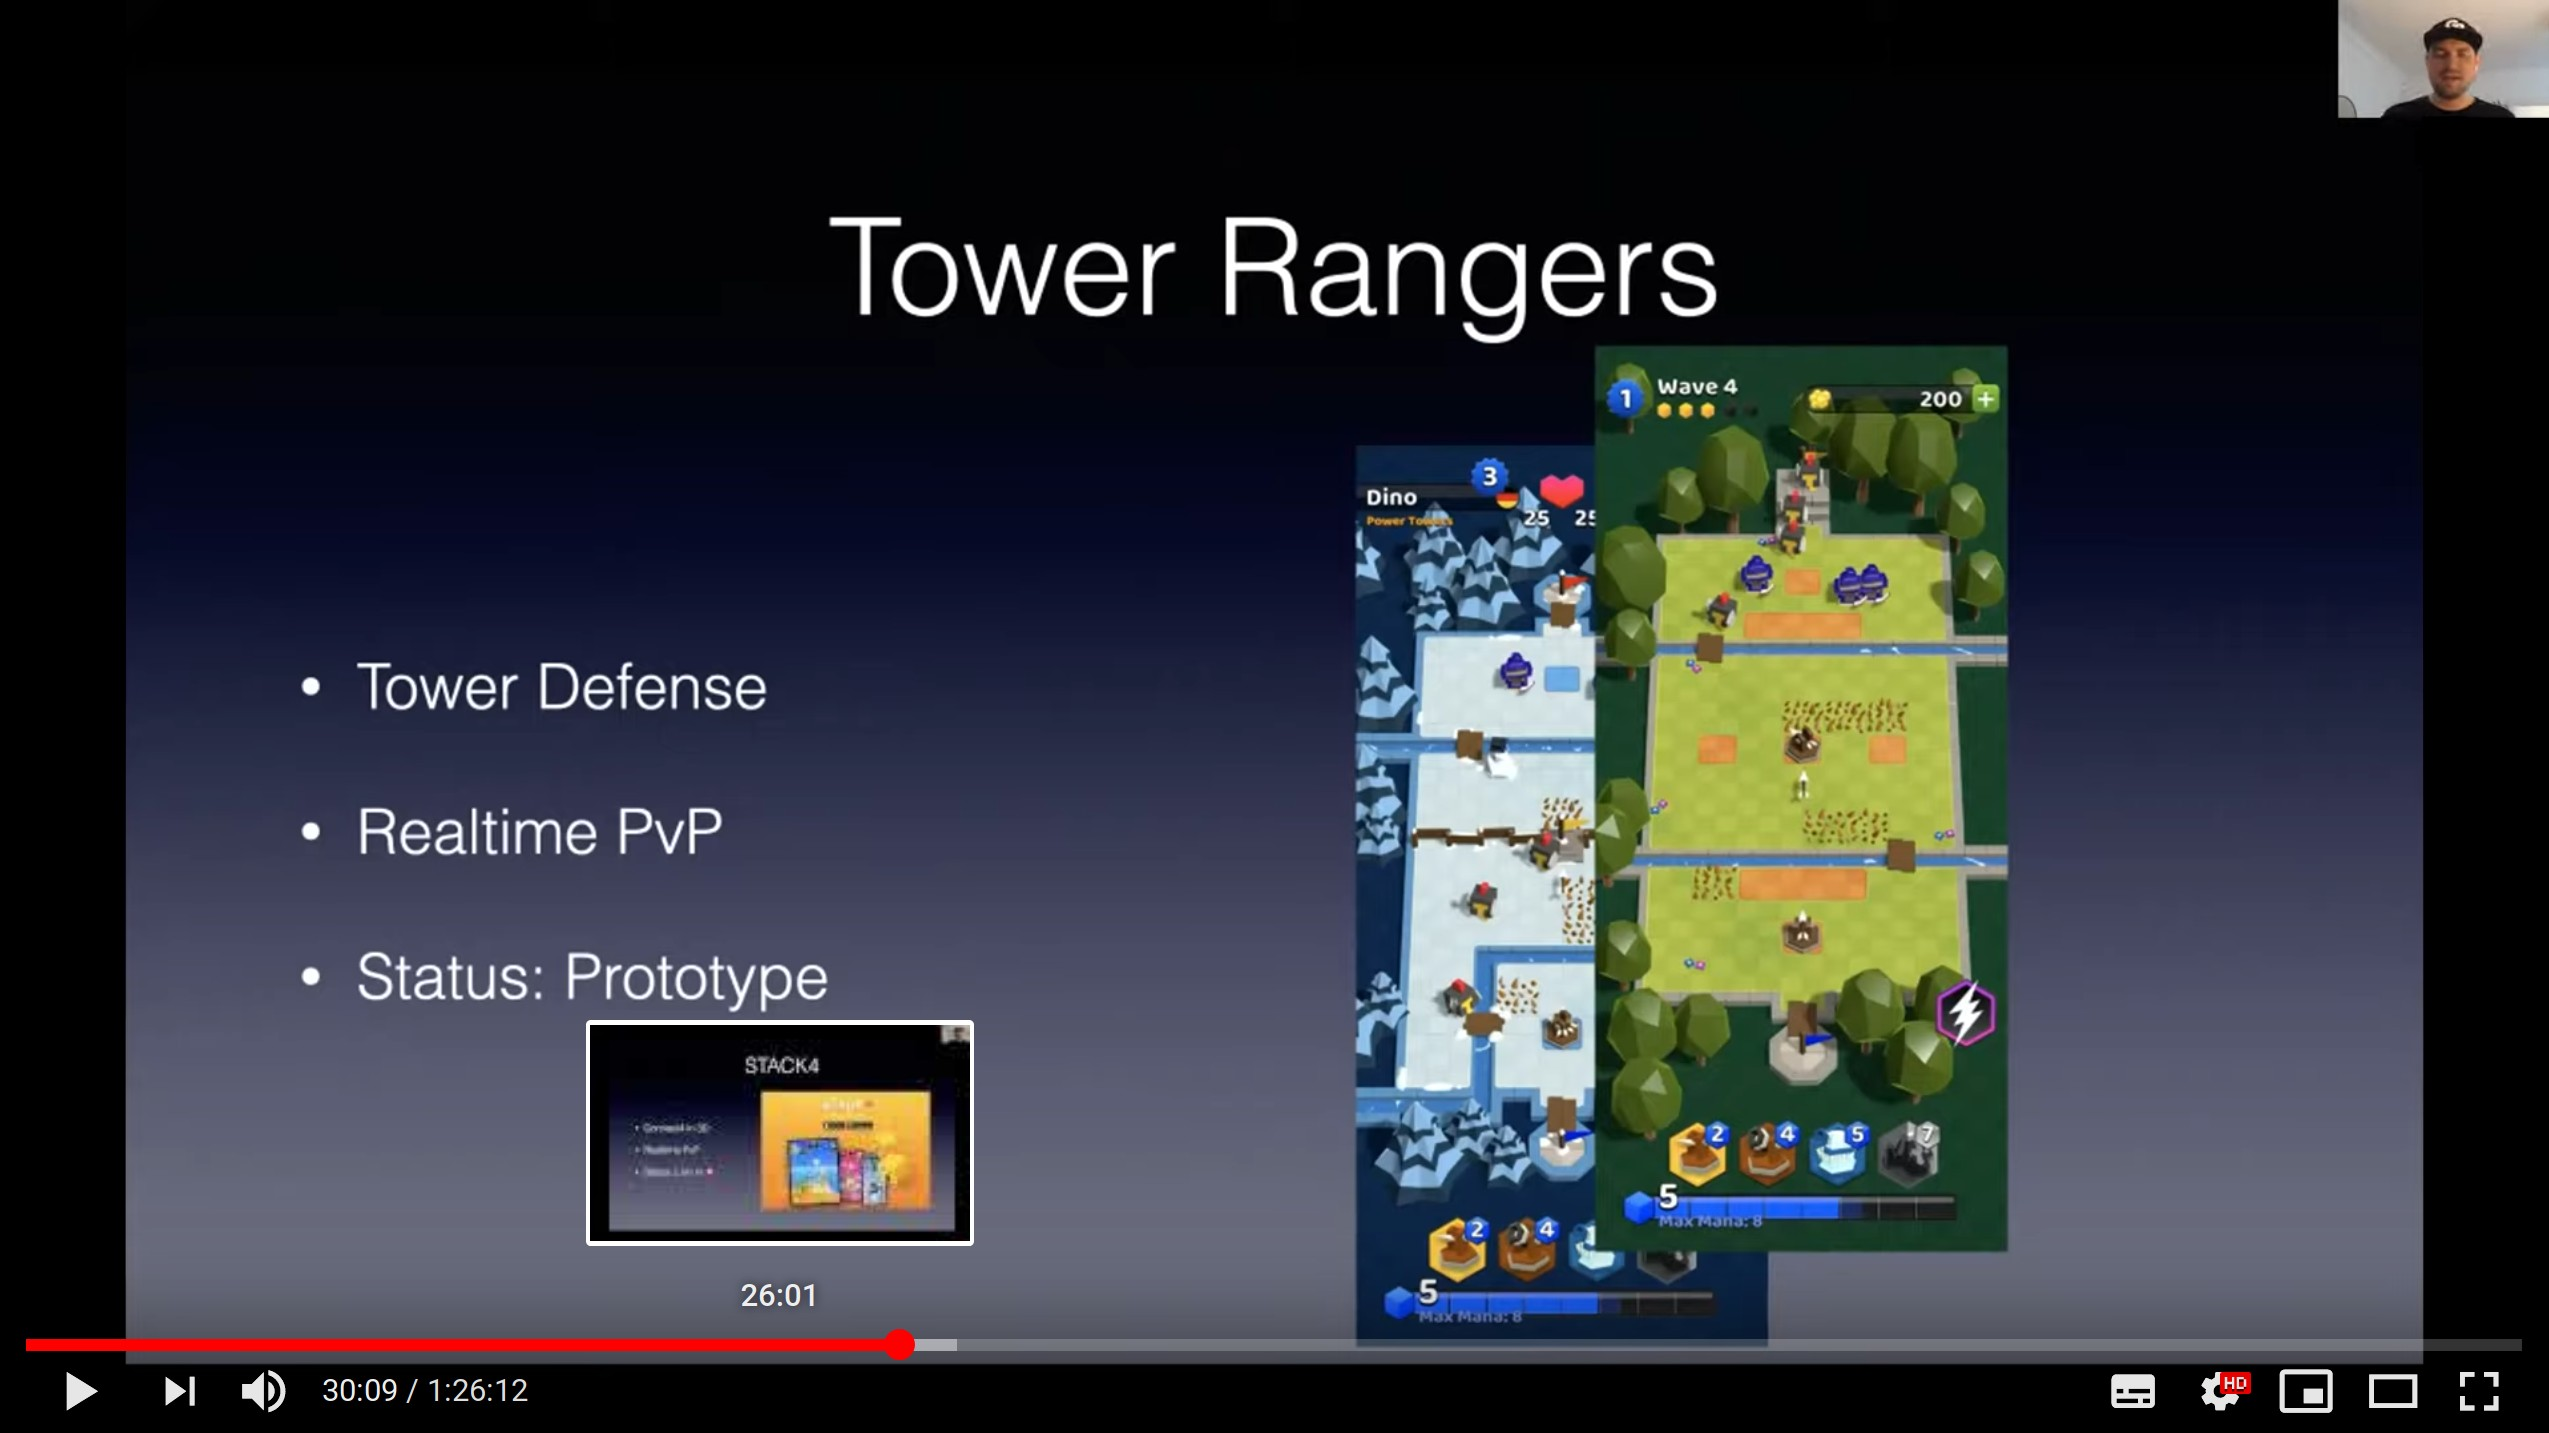 youtube preview: a slide with Tower Rangers game